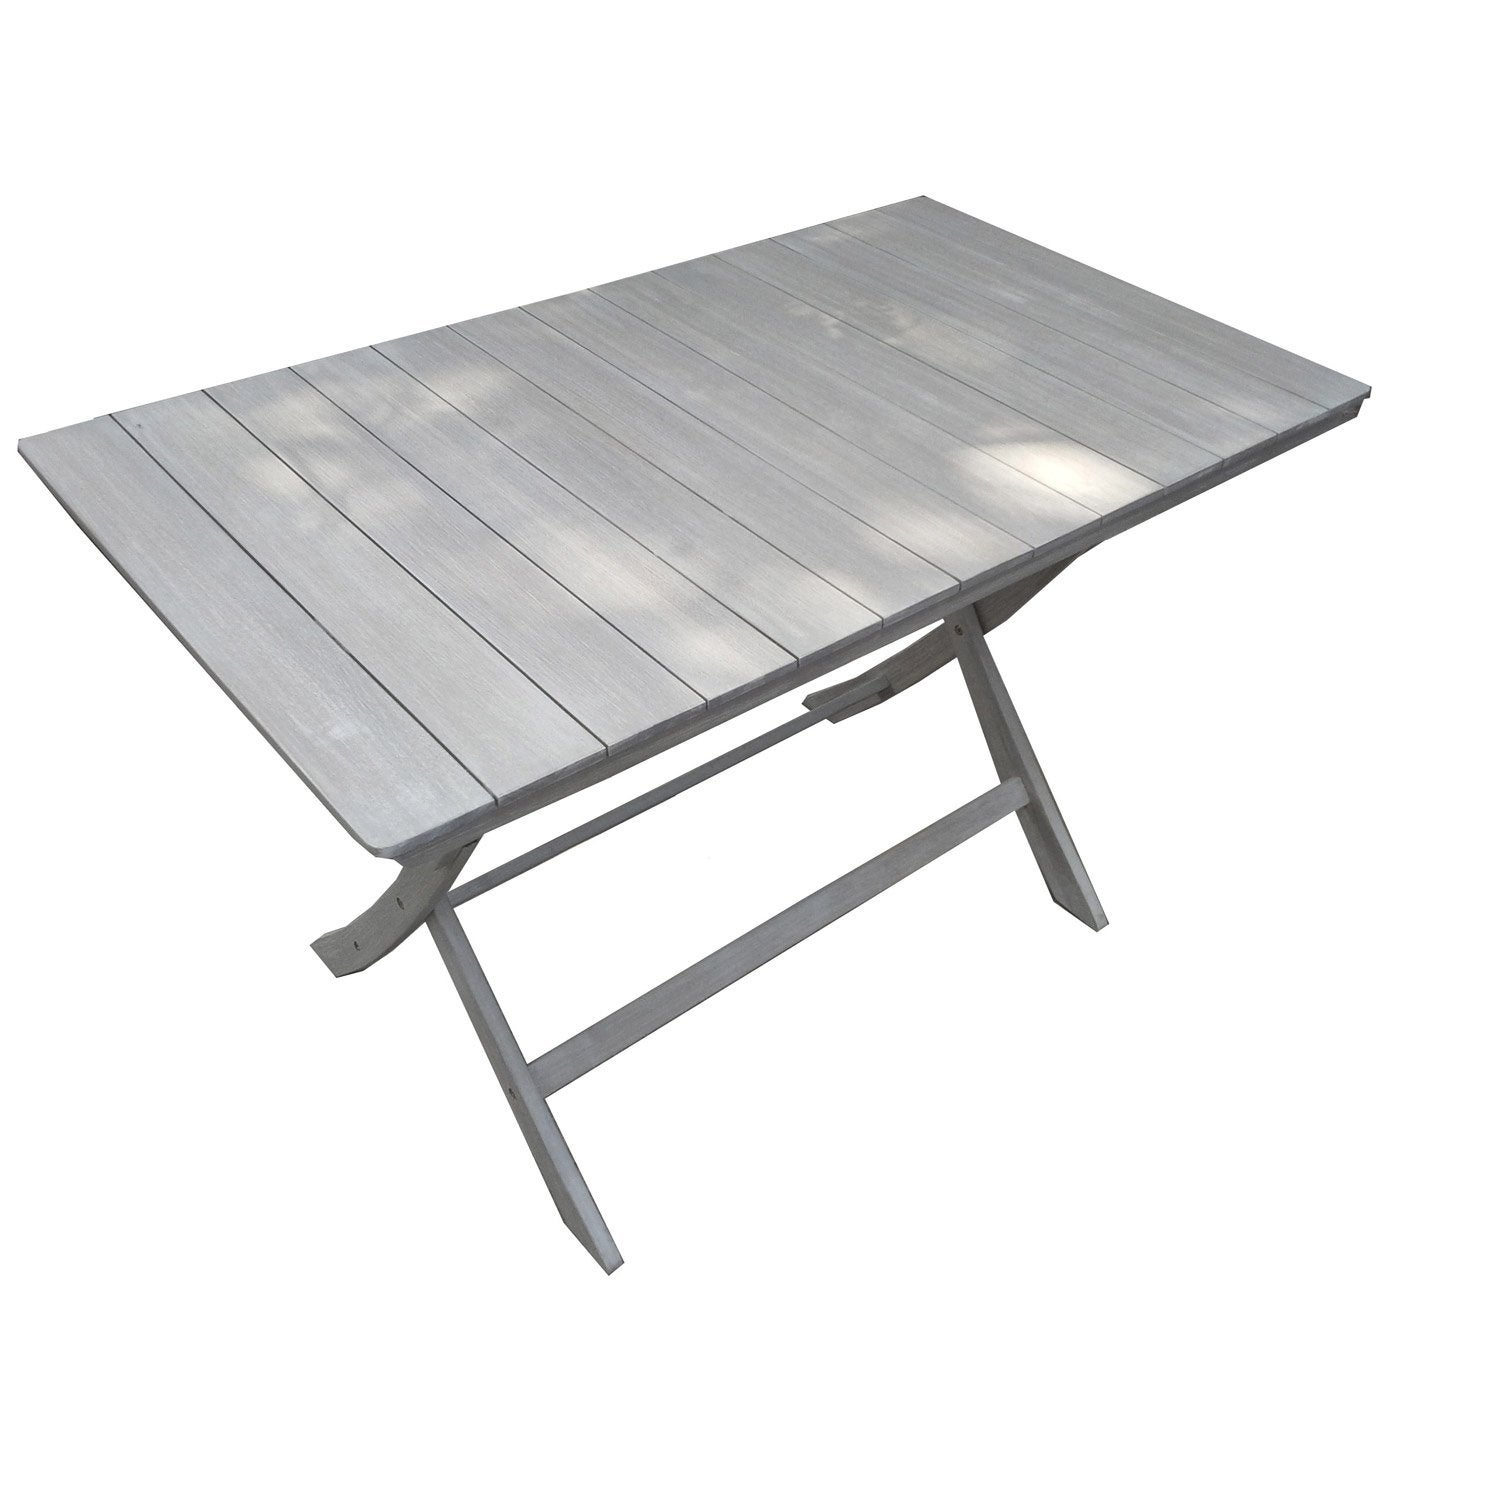 Table de jardin naterial portofino rectangulaire gris 4 for Bache salon de jardin leroy merlin